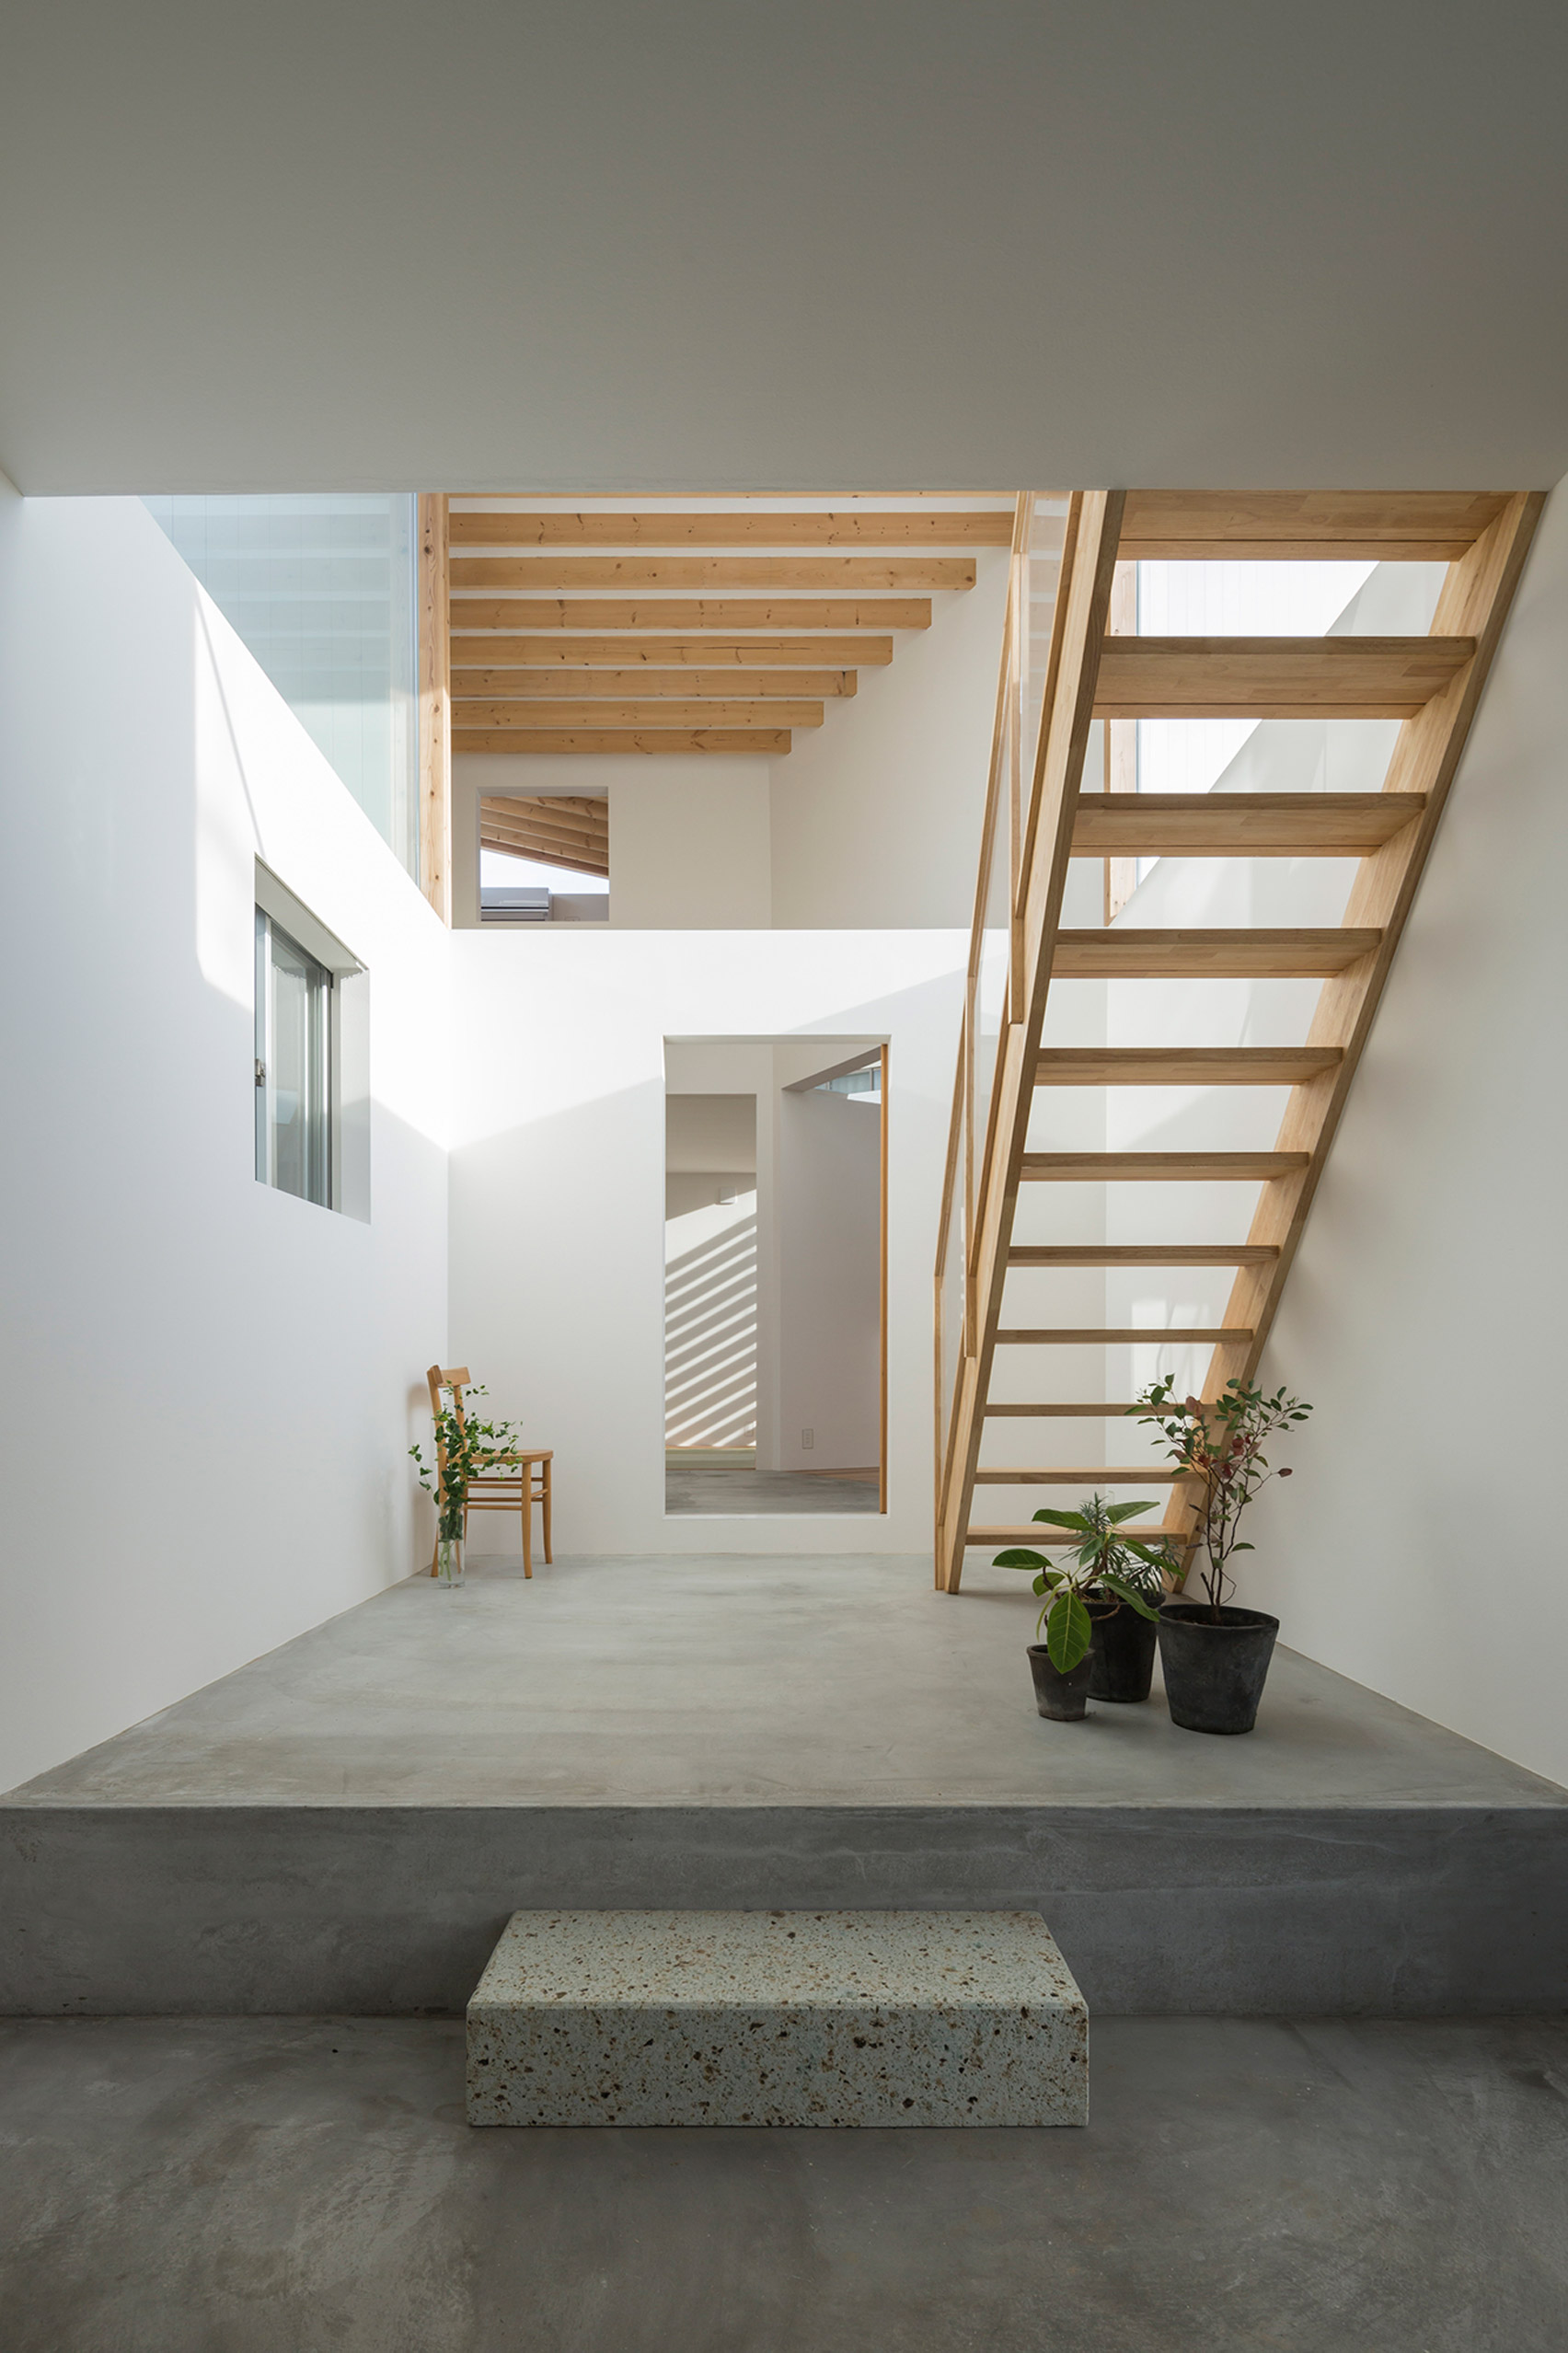 House in Hokusetsu by Tato Architects